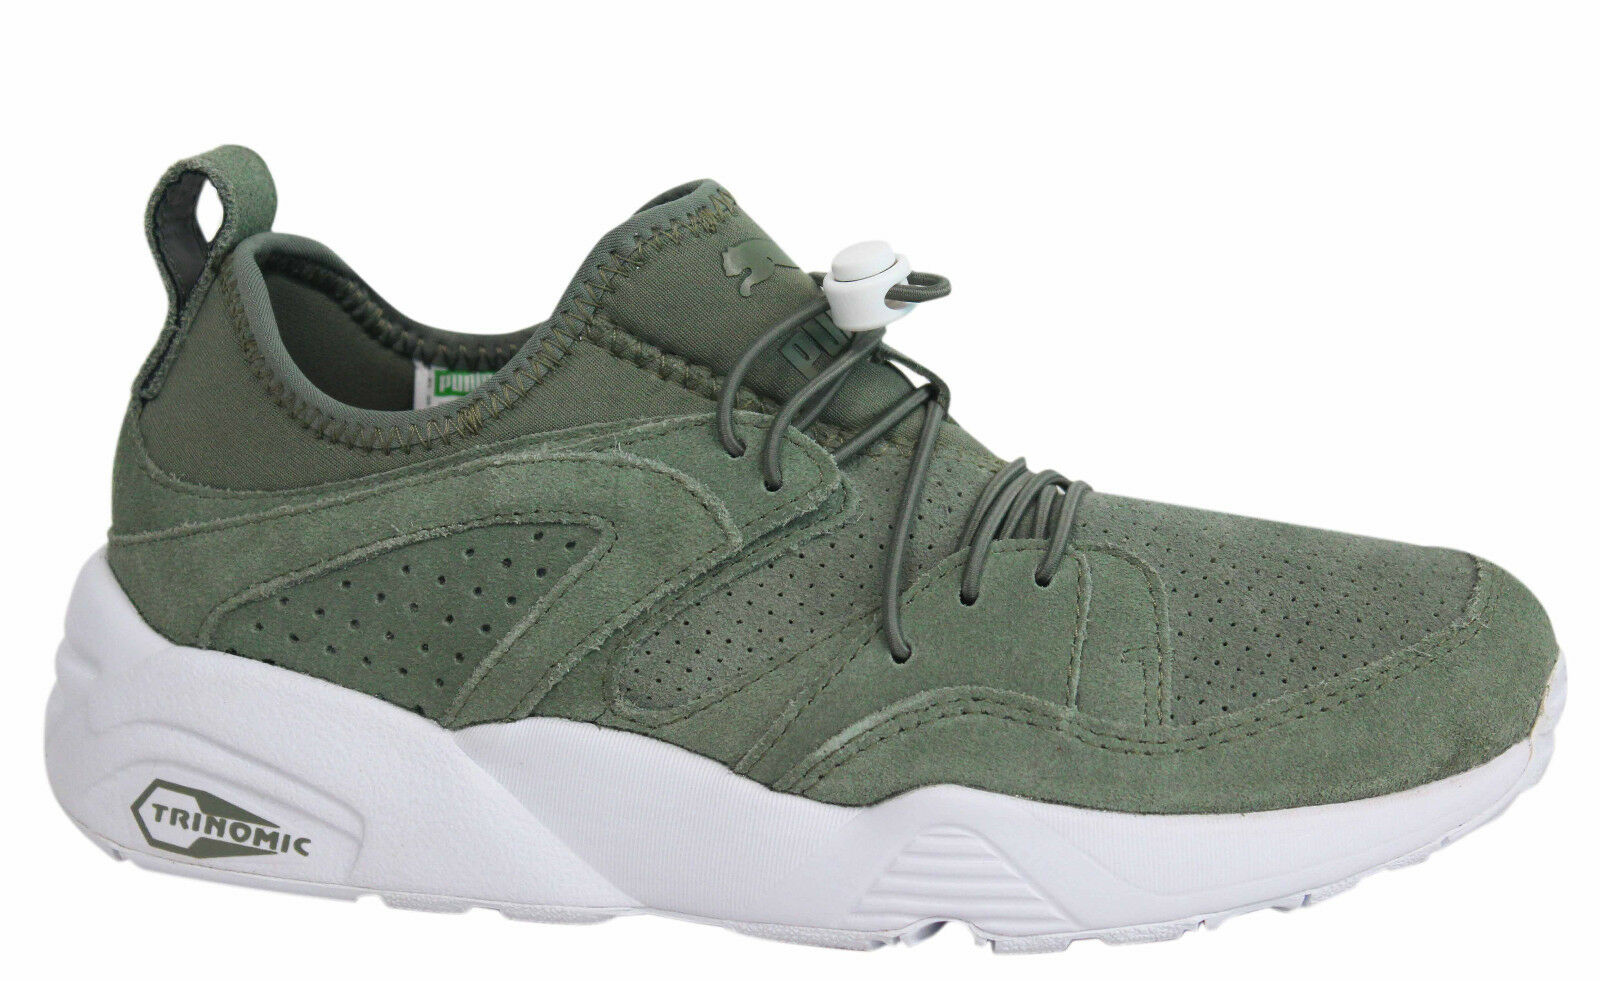 Puma Trinomic Blaze of Glory Soft Mens Green Trainers Shoes 360101 10 D37